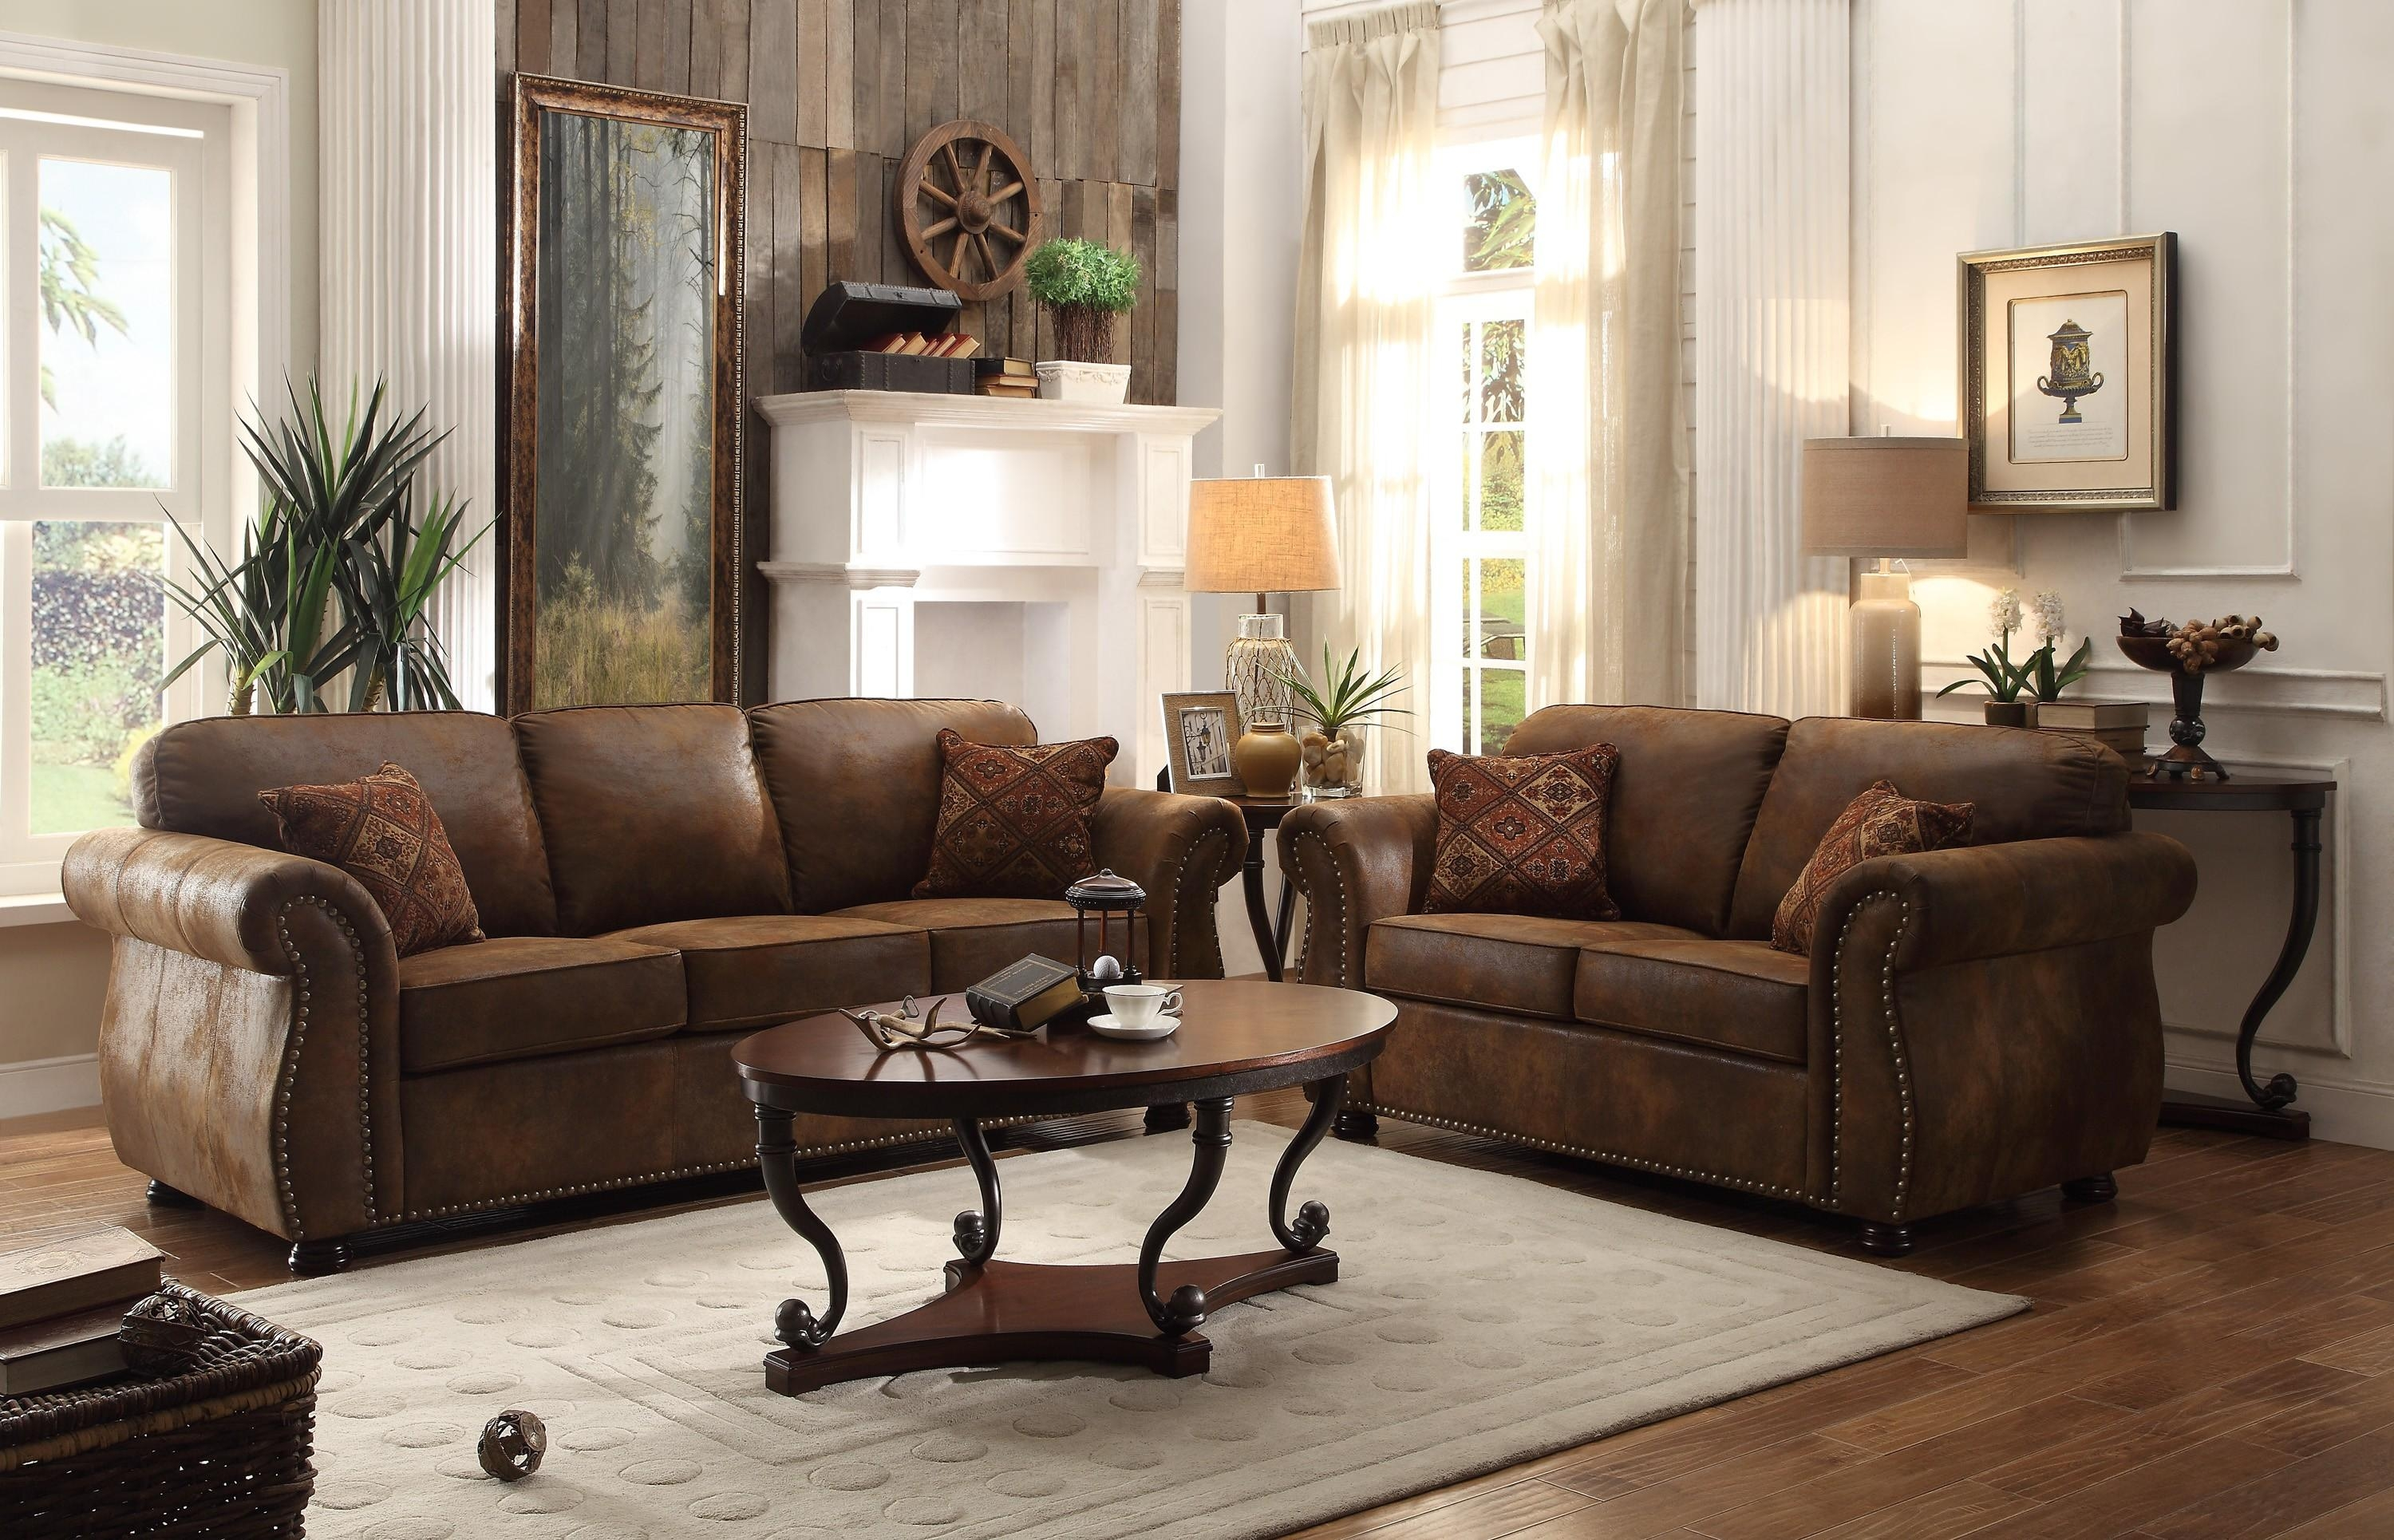 Bomber Jacket Leather Sofa With Inspiration Photo 36373 | Kengire With Regard To Bomber Leather Sofas (Image 5 of 20)